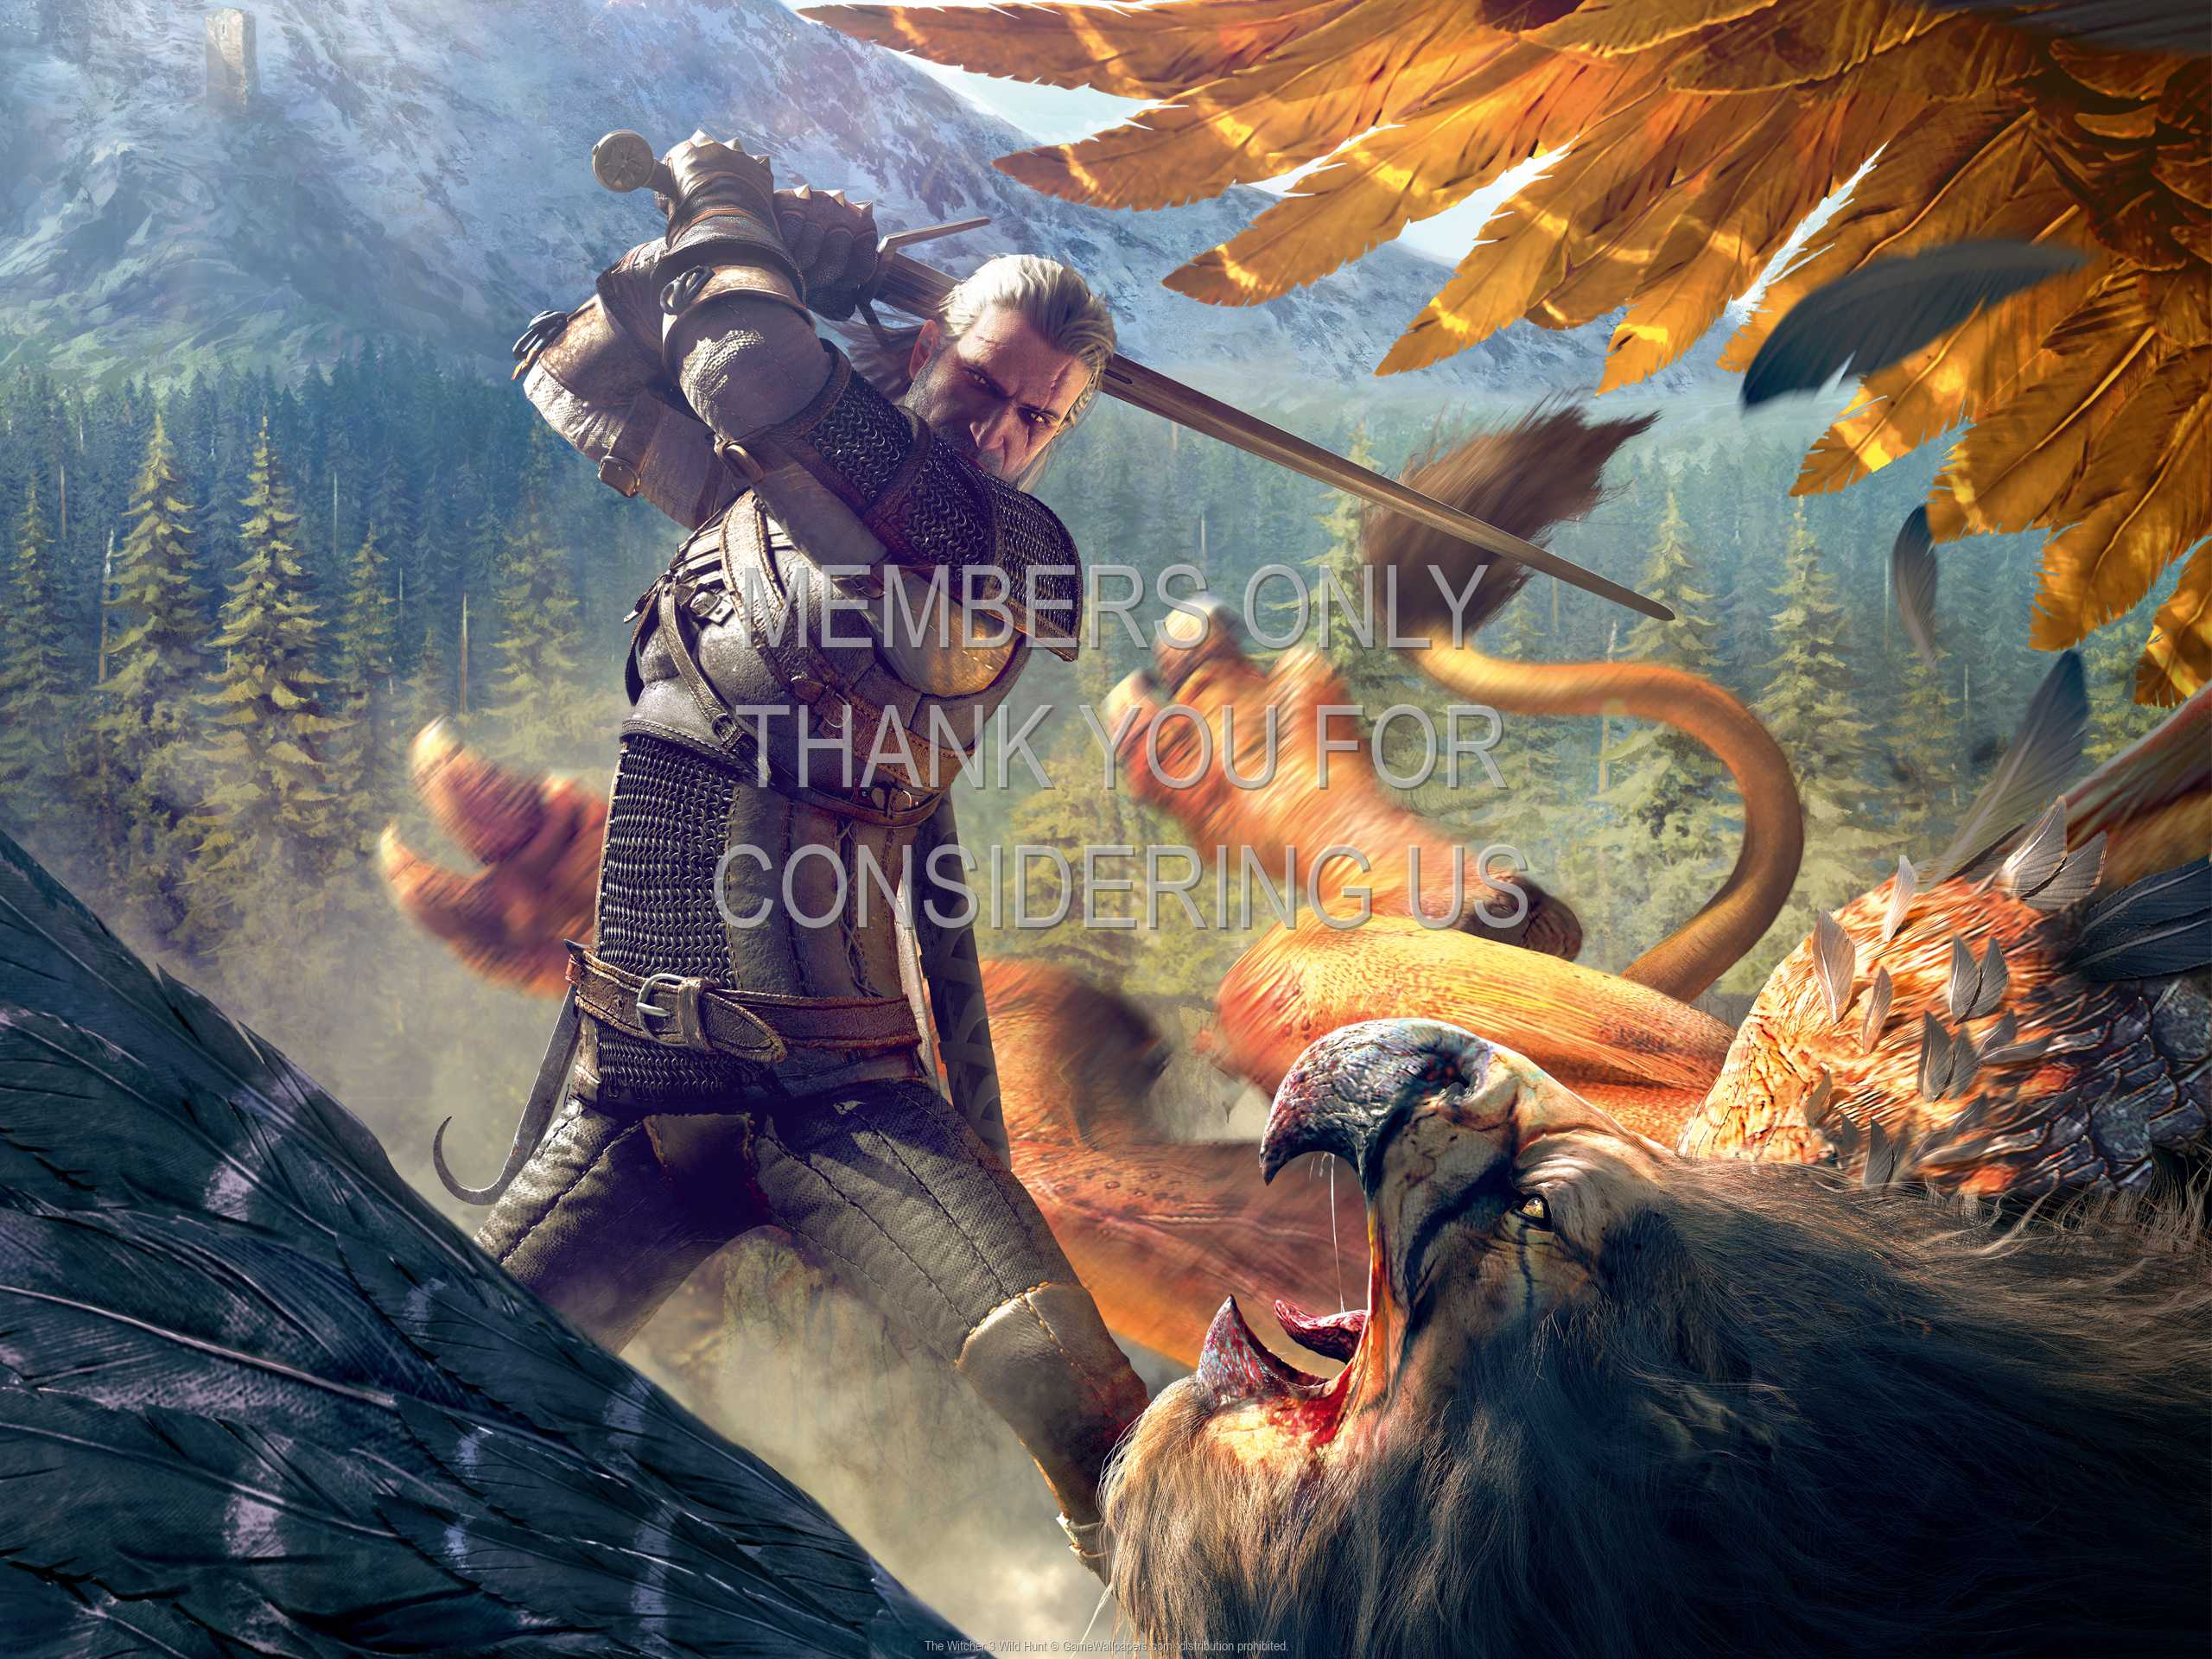 The Witcher 3: Wild Hunt 1080p Horizontal Mobiele achtergrond 29